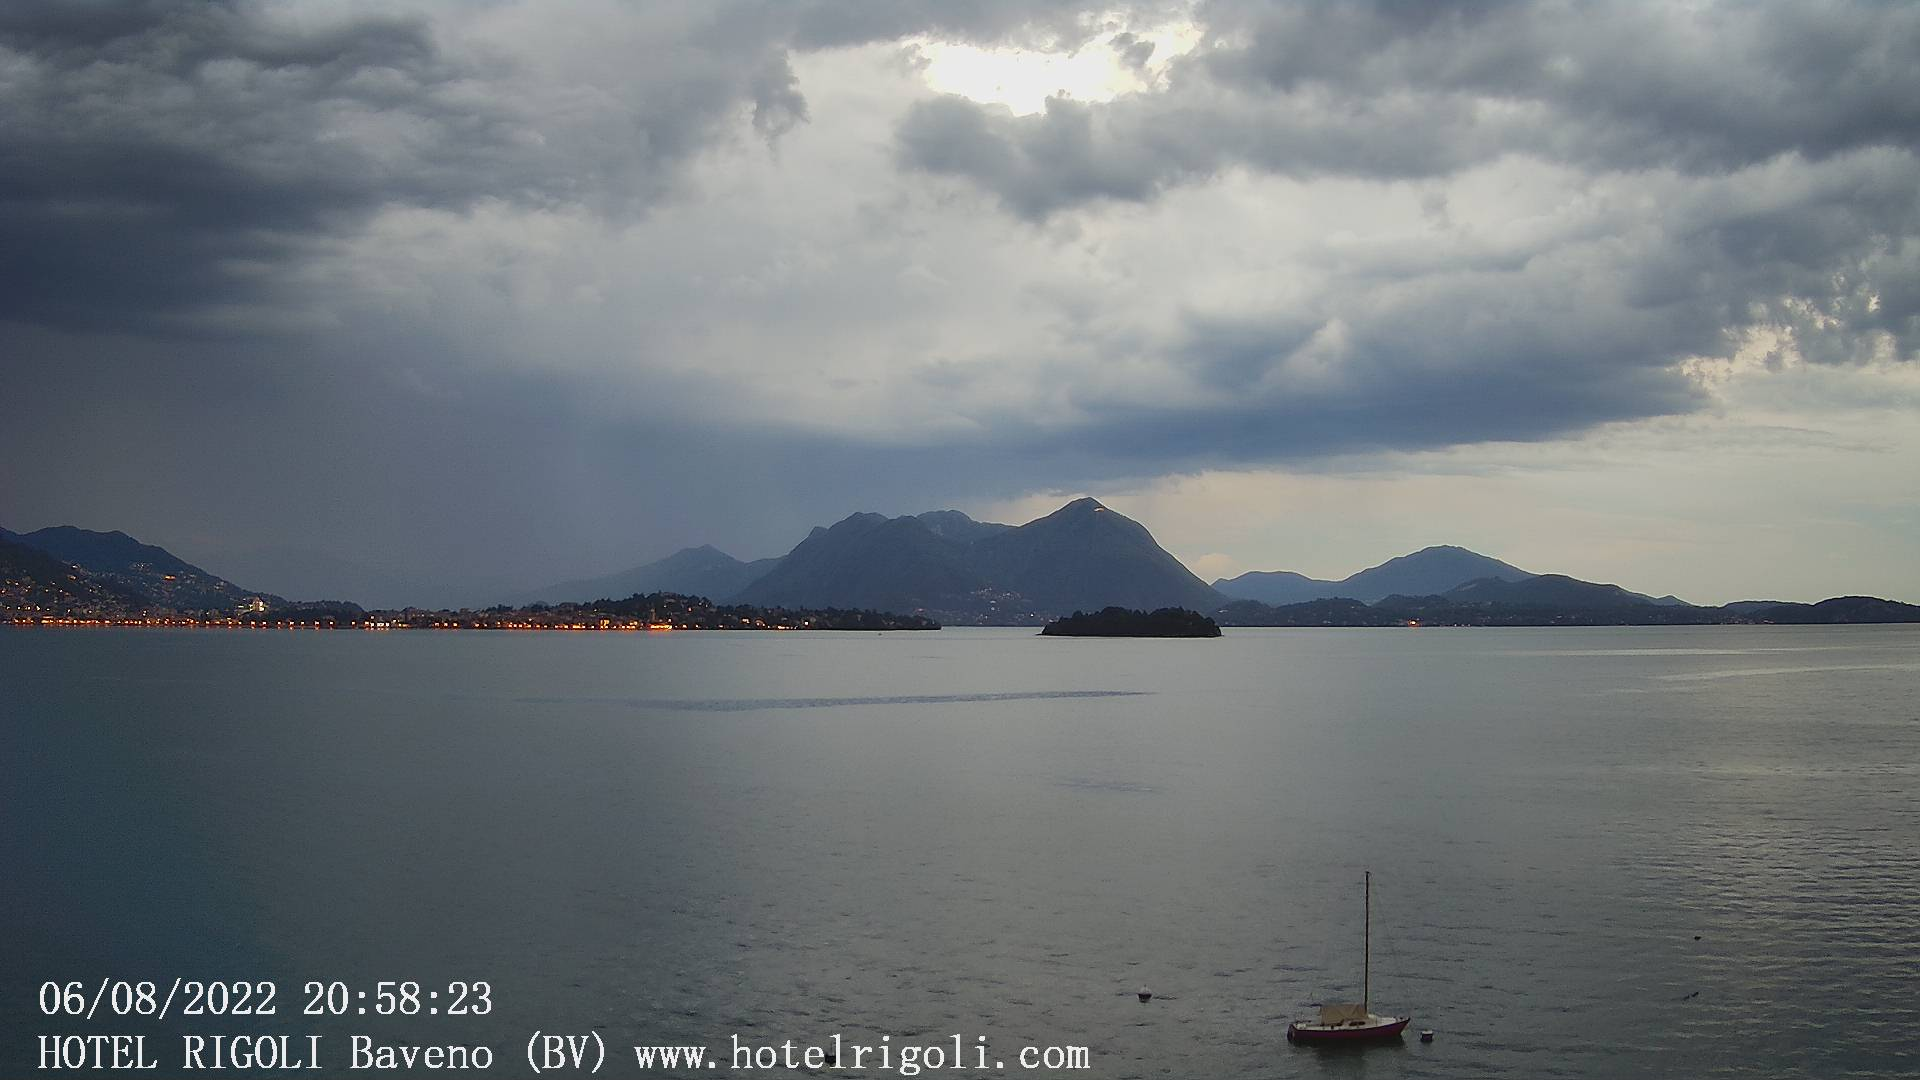 Webcam vista di Verbania e isole da Baveno